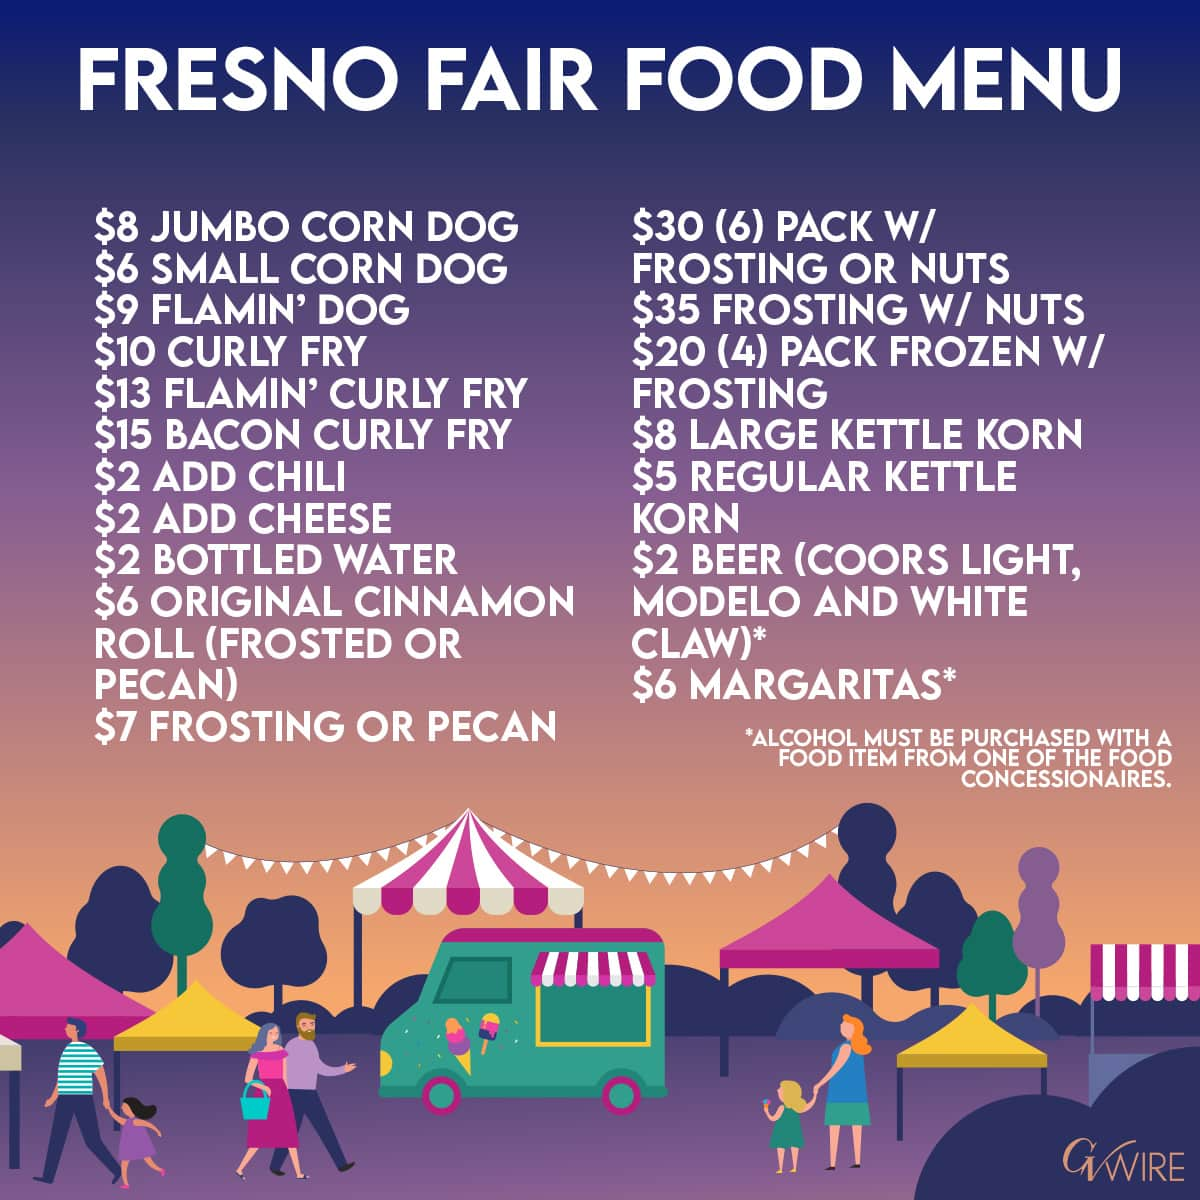 Satisfy Your Cravings for Fair Food Starting Today